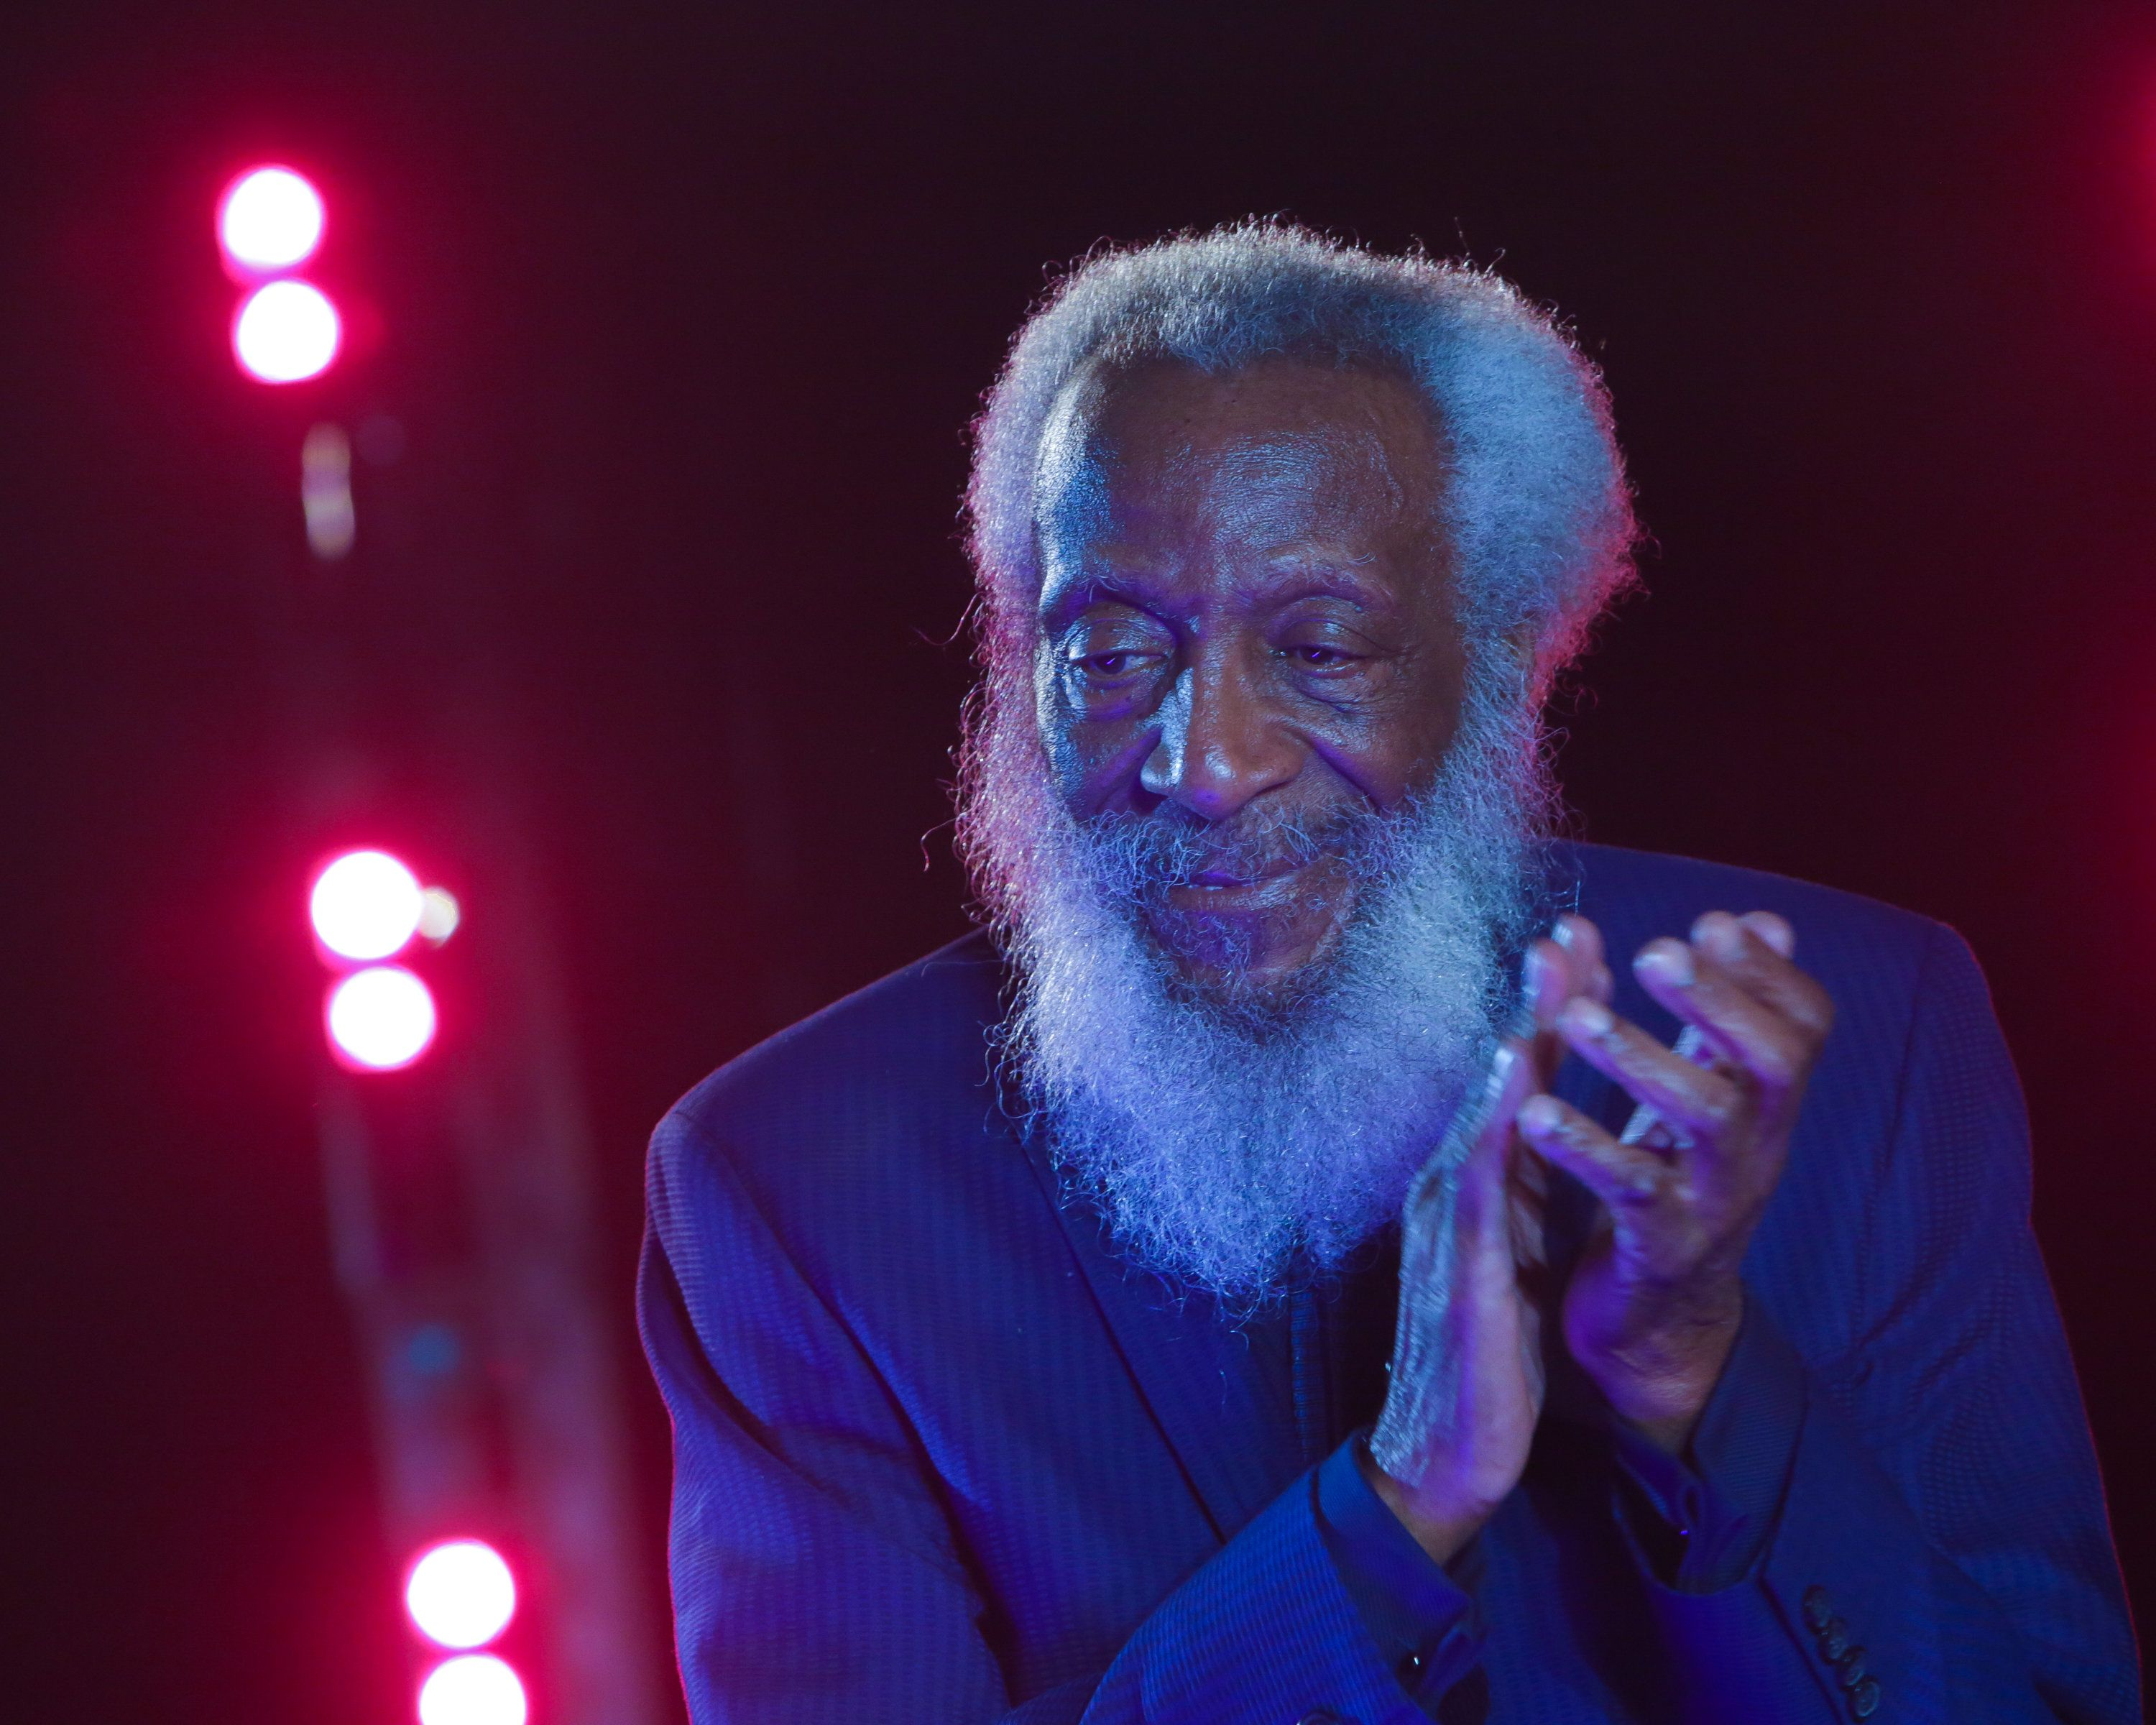 NEW YORK, NY - MAY 19:  Comedian/civil rights activist Dick Gregory speaks on stage following the opening night performance of 'Turn Me Loose' held at The Westside Theatre on May 19, 2016 in New York City.  (Photo by Brent N. Clarke/FilmMagic)